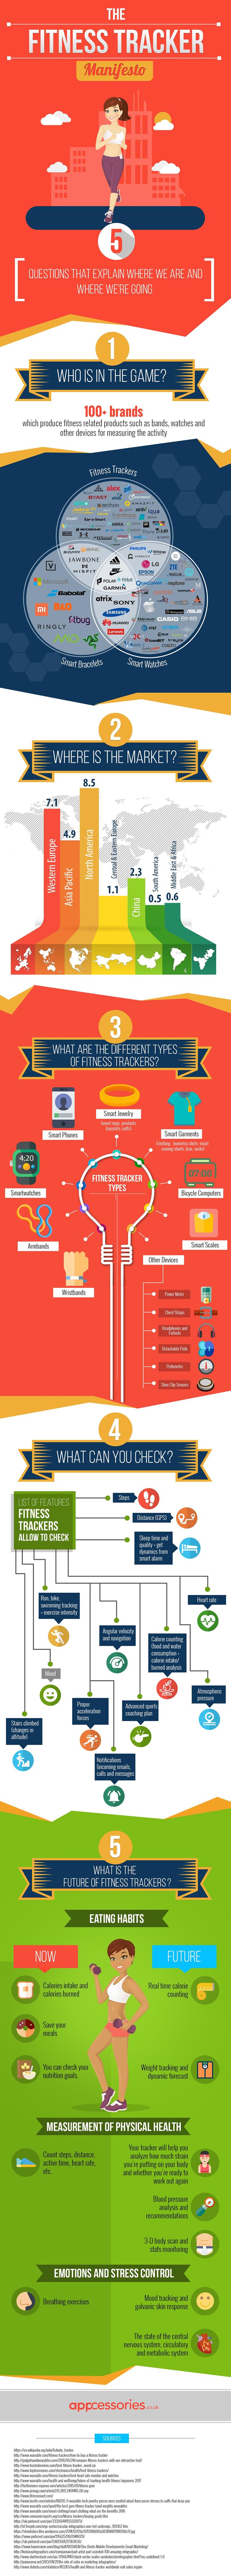 Infographic courtesy of